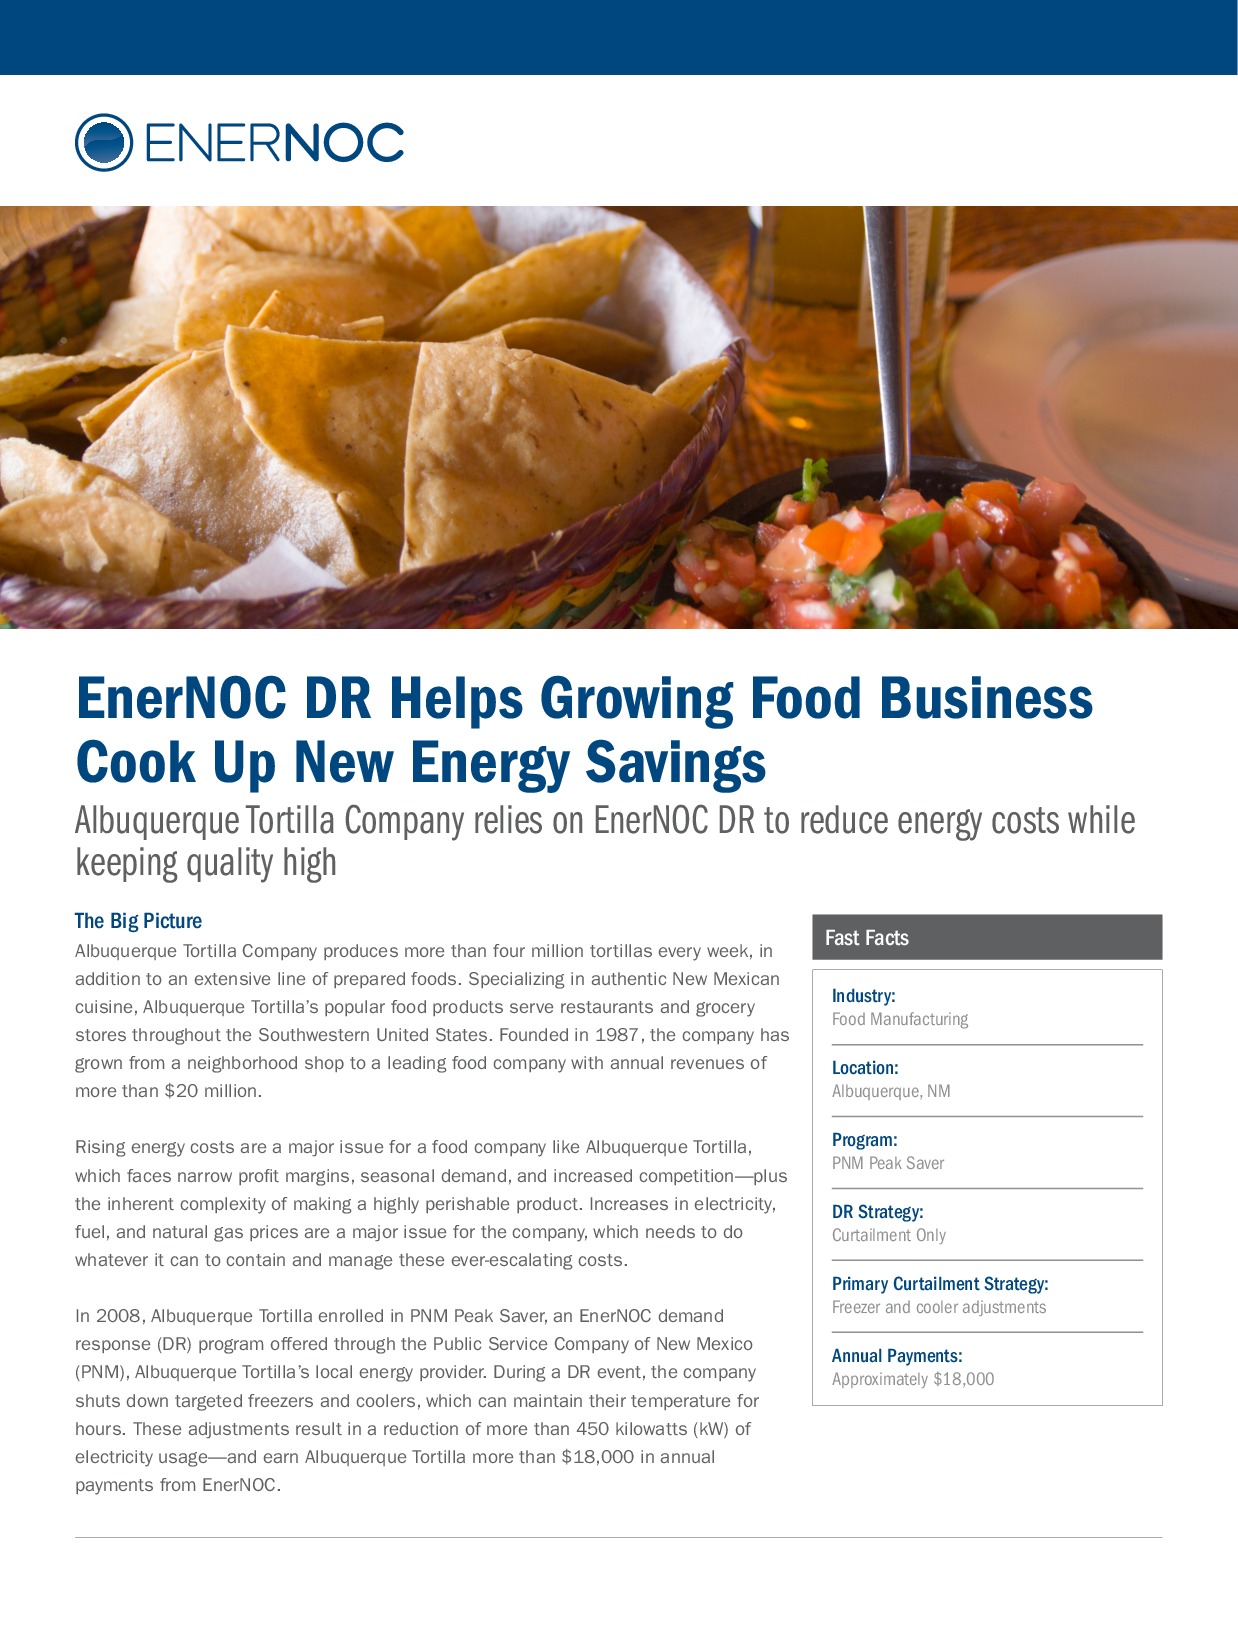 EnerNOC DR Helps Growing Food Business  Cook Up New Energy Savings